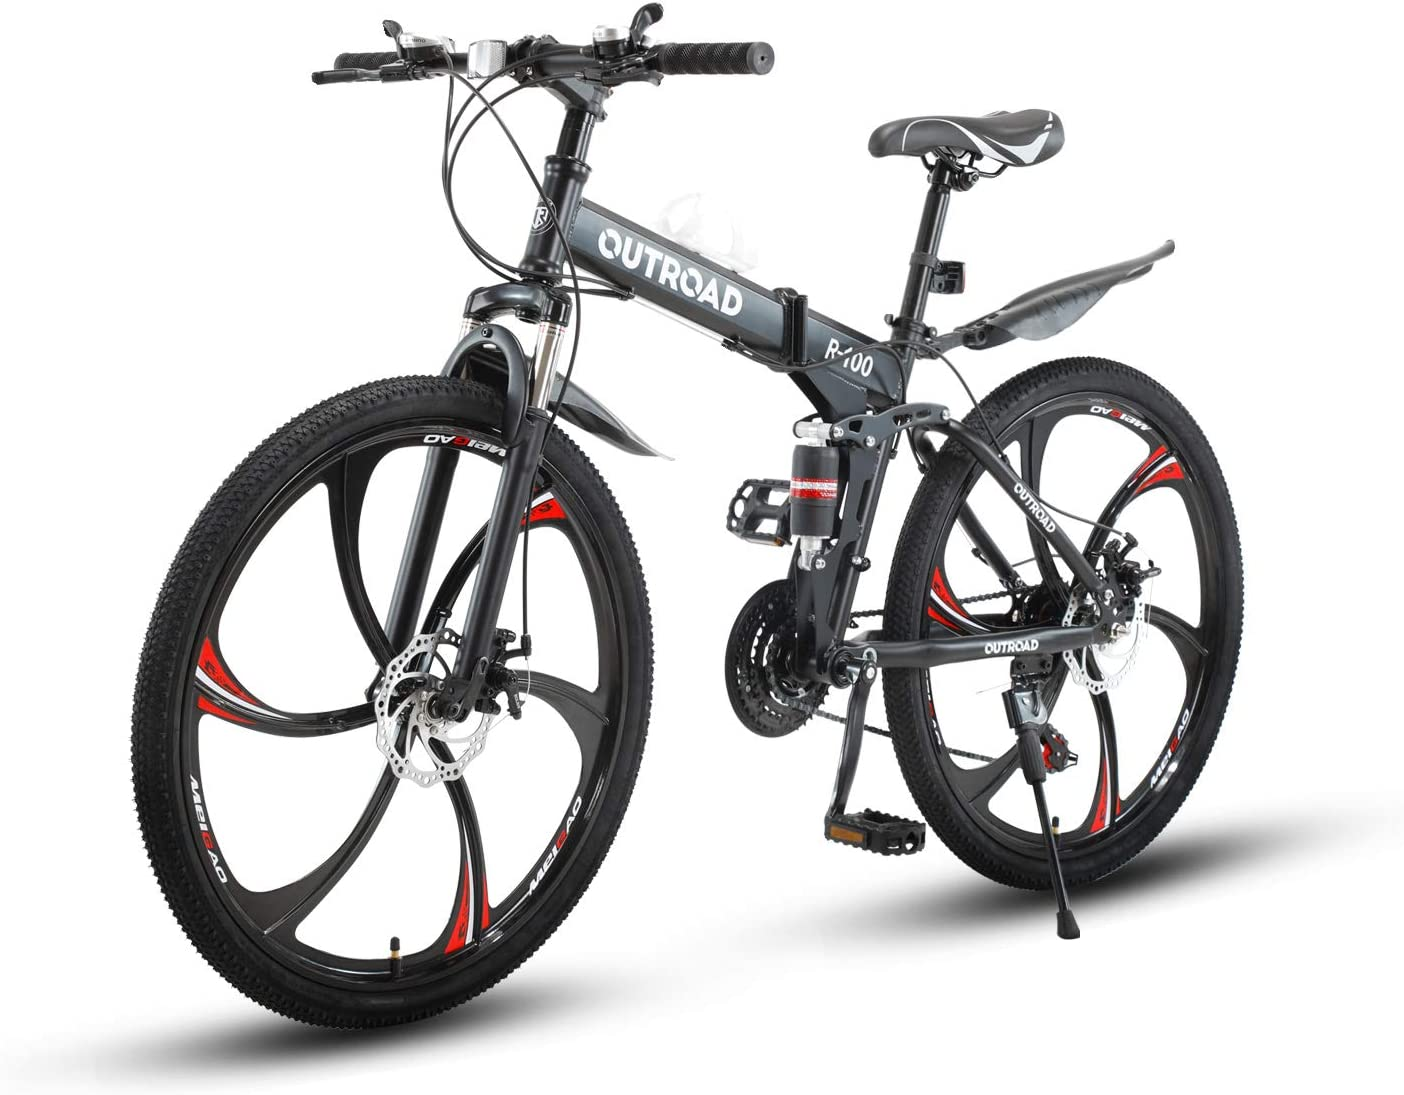 Max4out Outroad R-100 Folding Mountain Bike